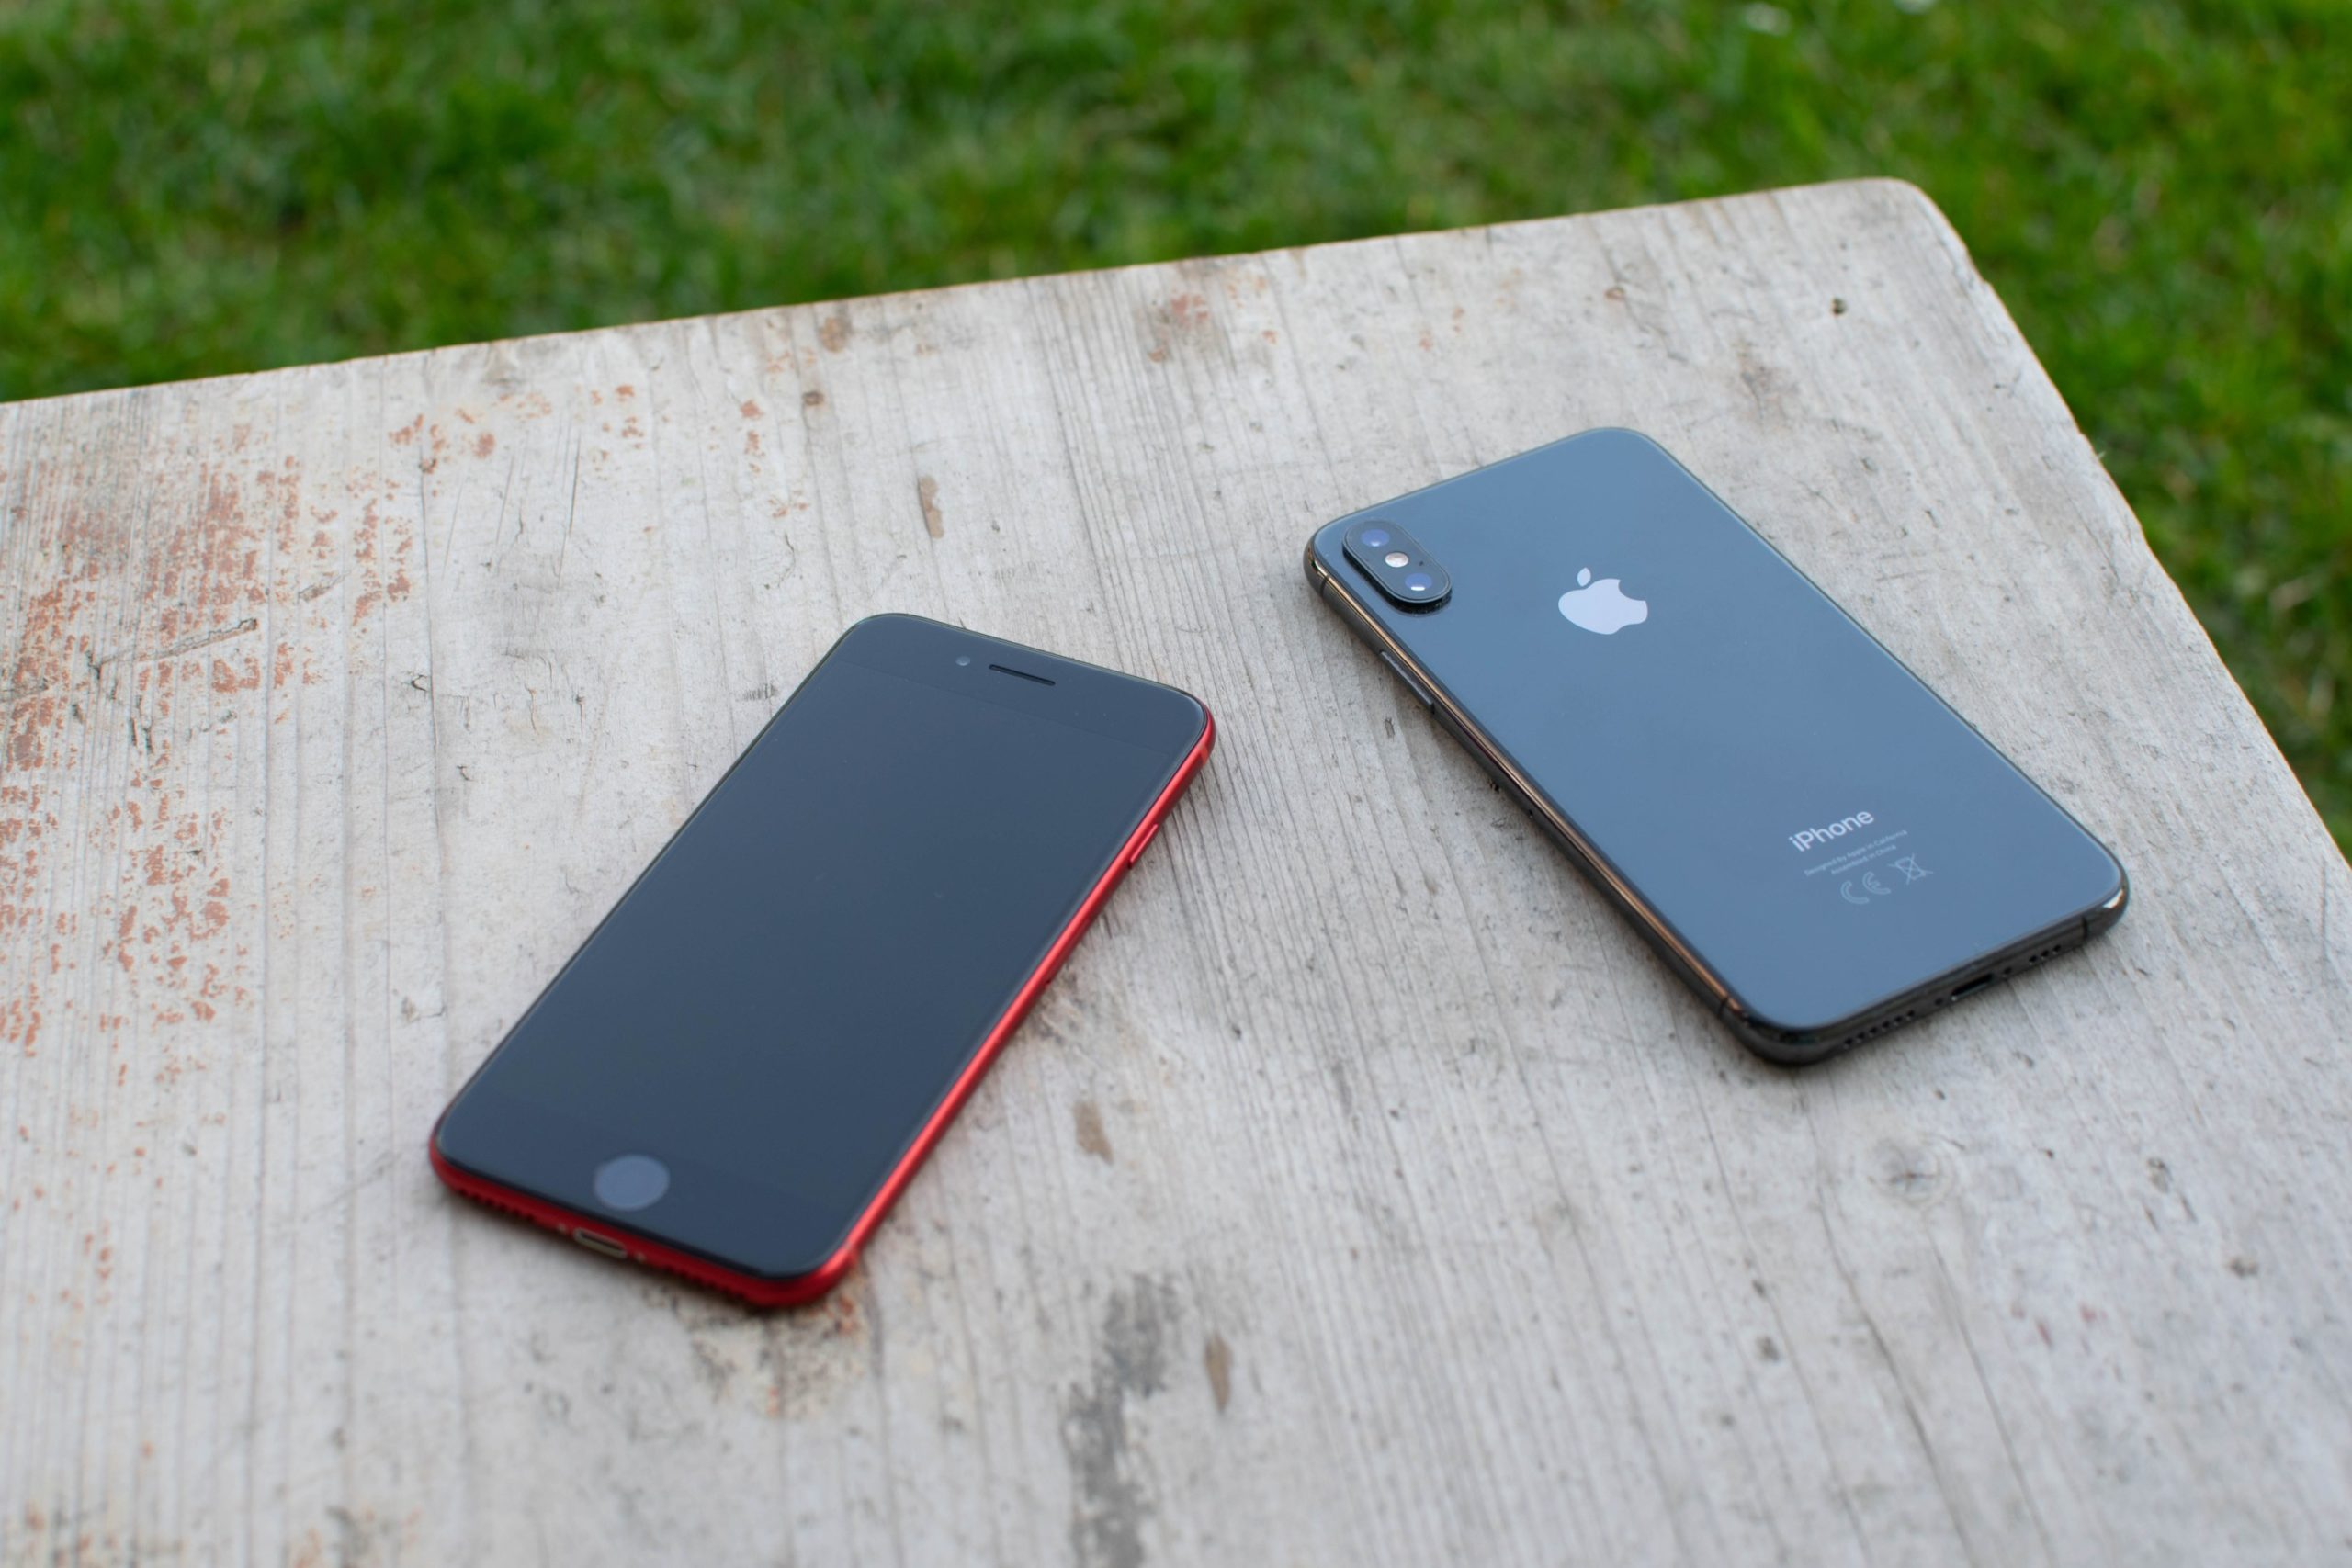 iPhone SE 2 and iPhone XS